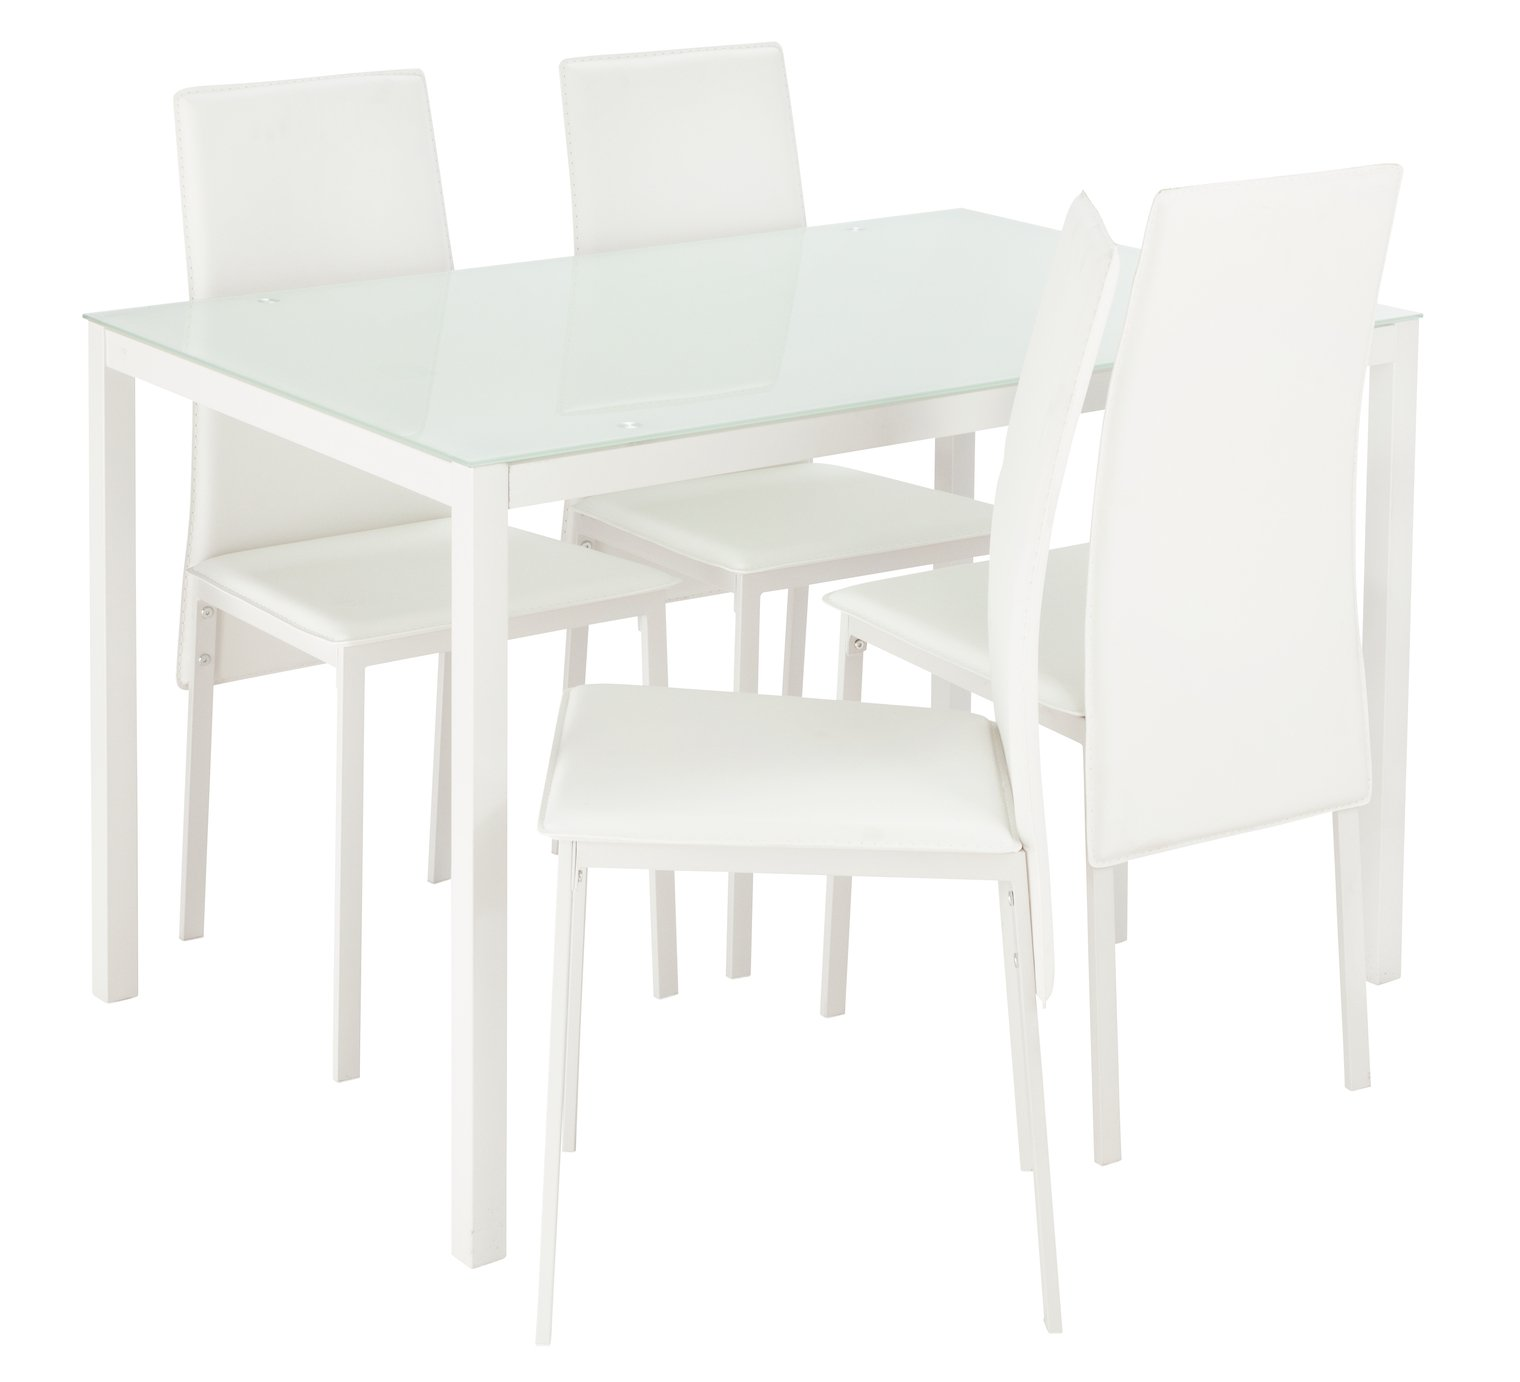 Mandy Dining Table And 4 White Chairs